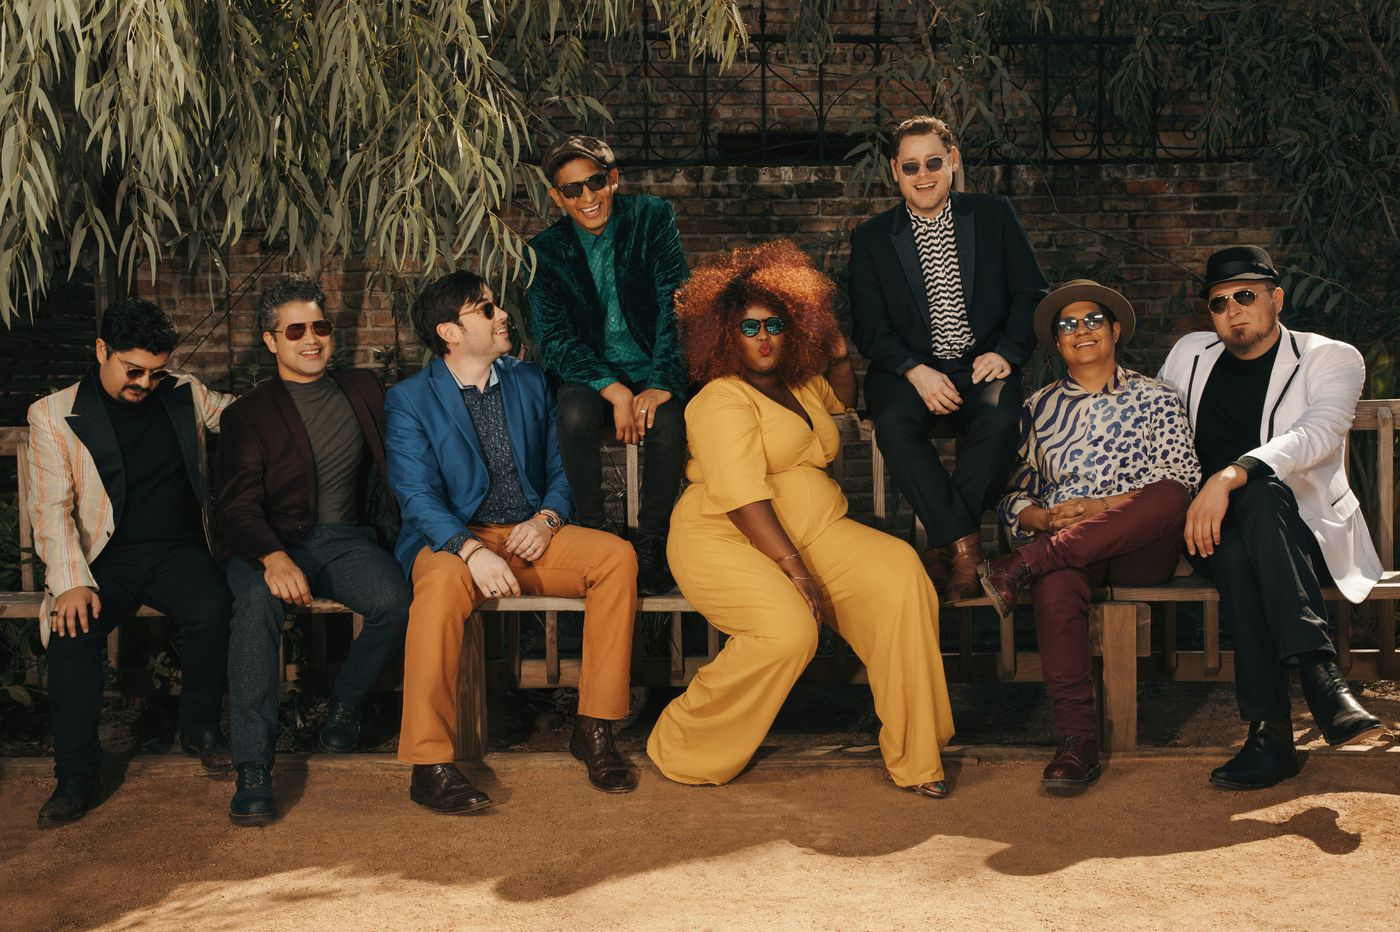 Dan DeLuca's Mix Picks: The Suffers, The Rolling Stones and a Sun Ra mattress commercial